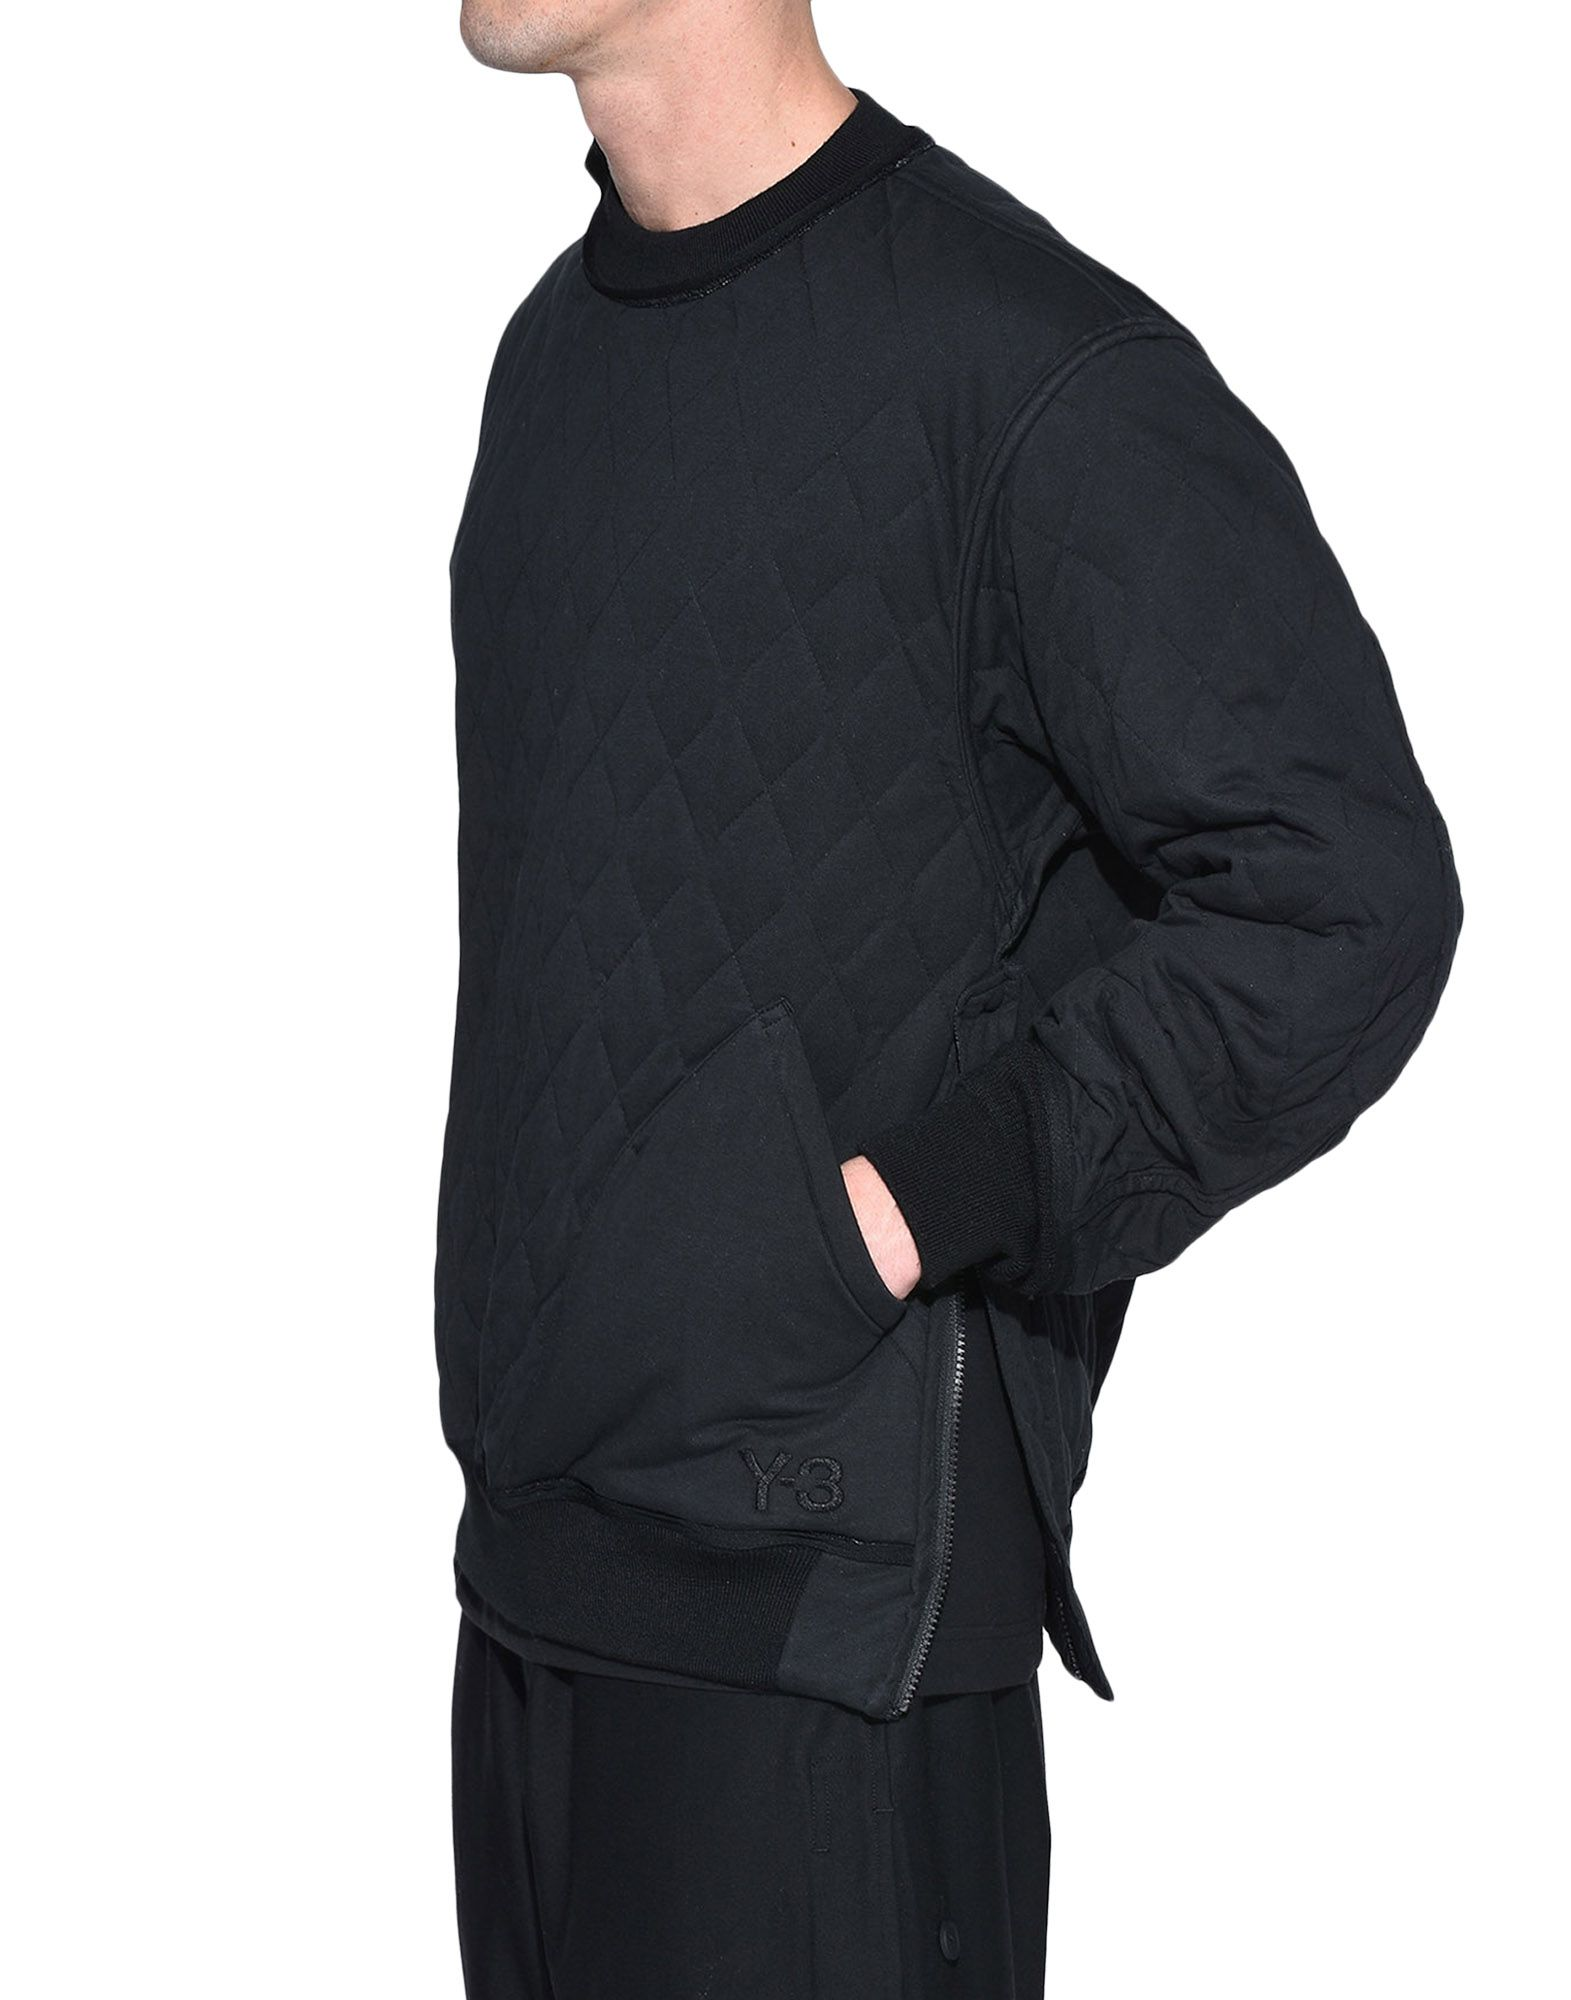 Y-3 Y-3 Quilted Sweater Sweatshirt Man e